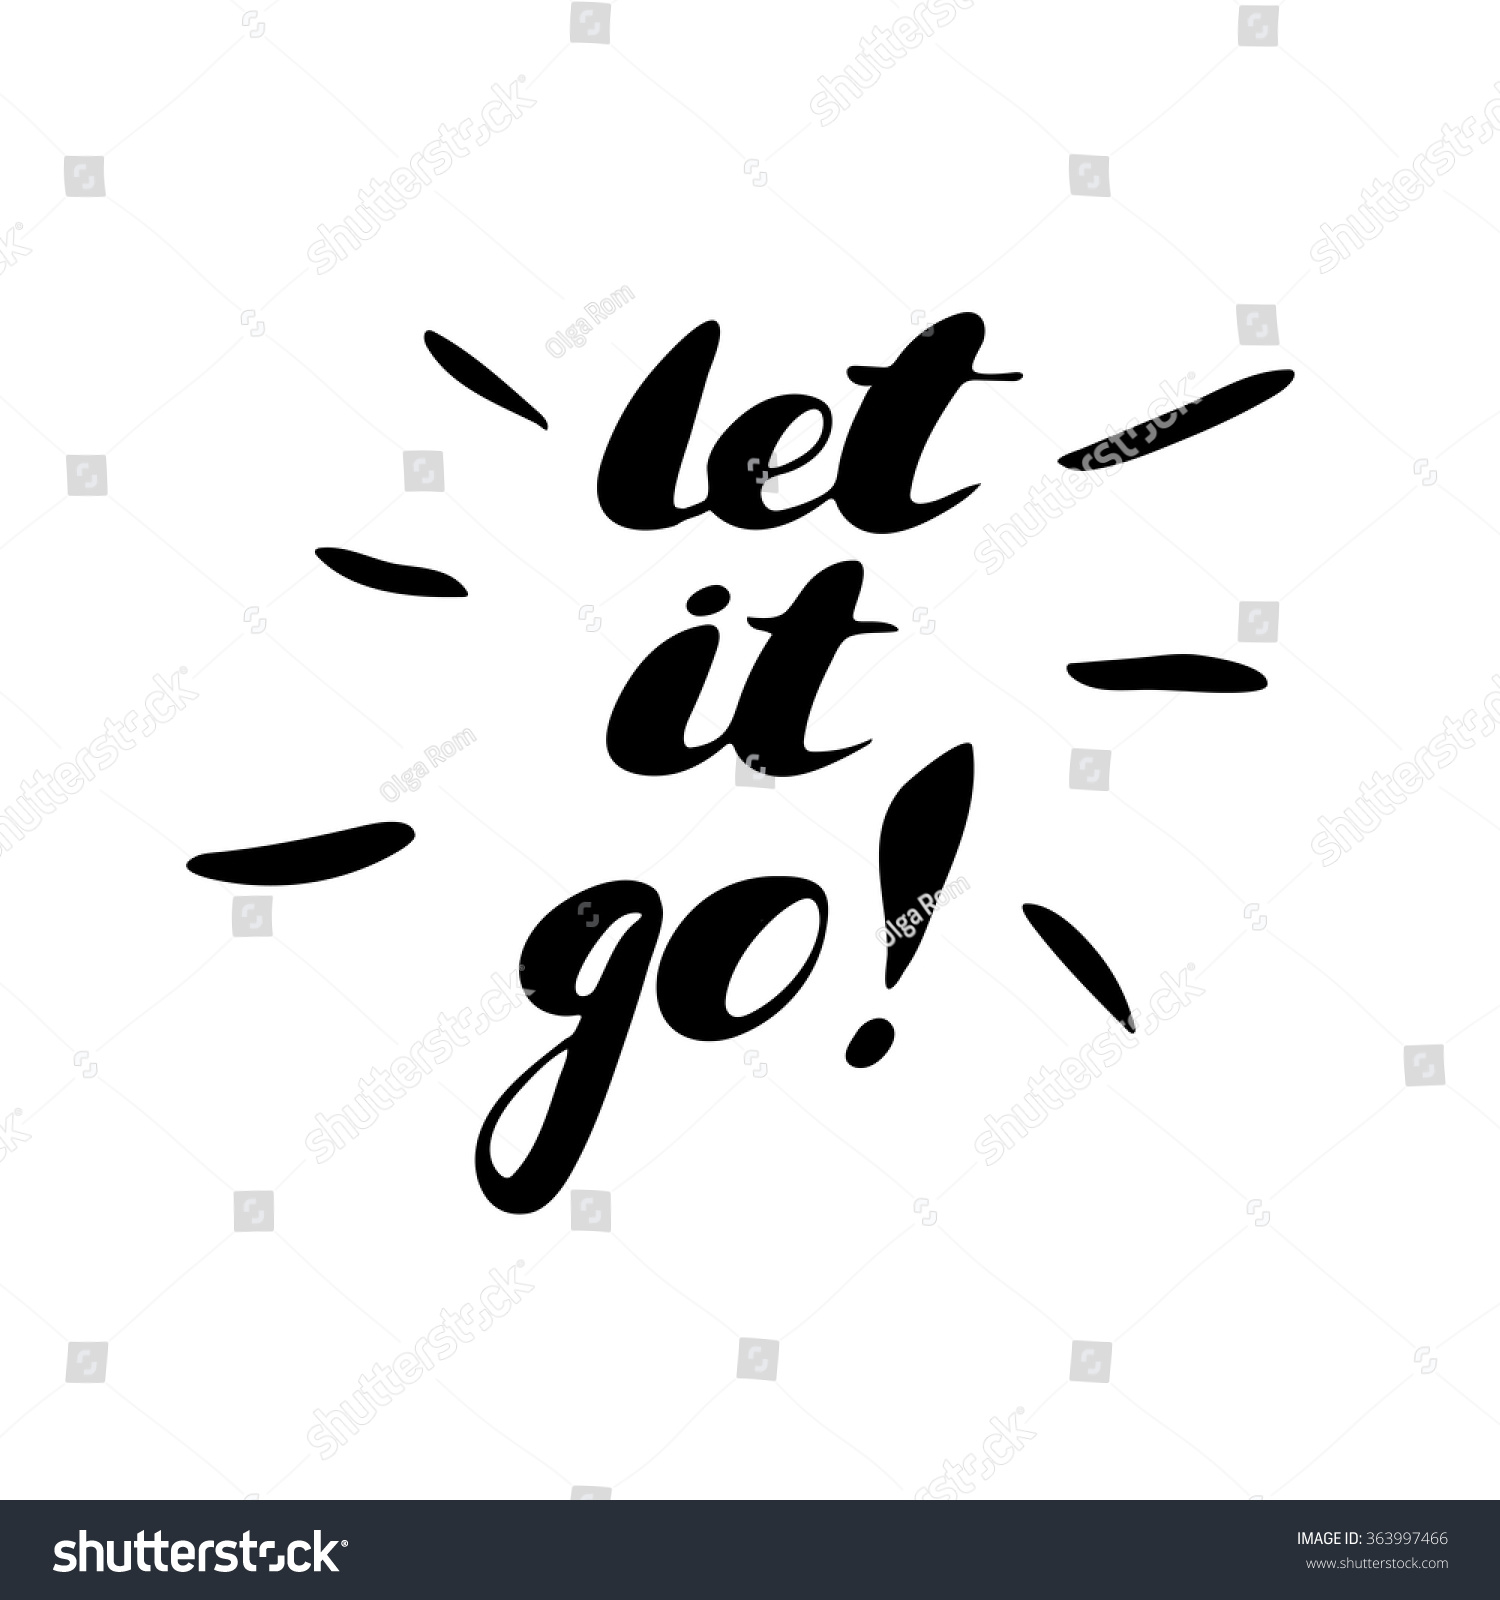 Let It Go Quotes Let Go Hand Painted Brush Pen Stock Vector 363997466  Shutterstock